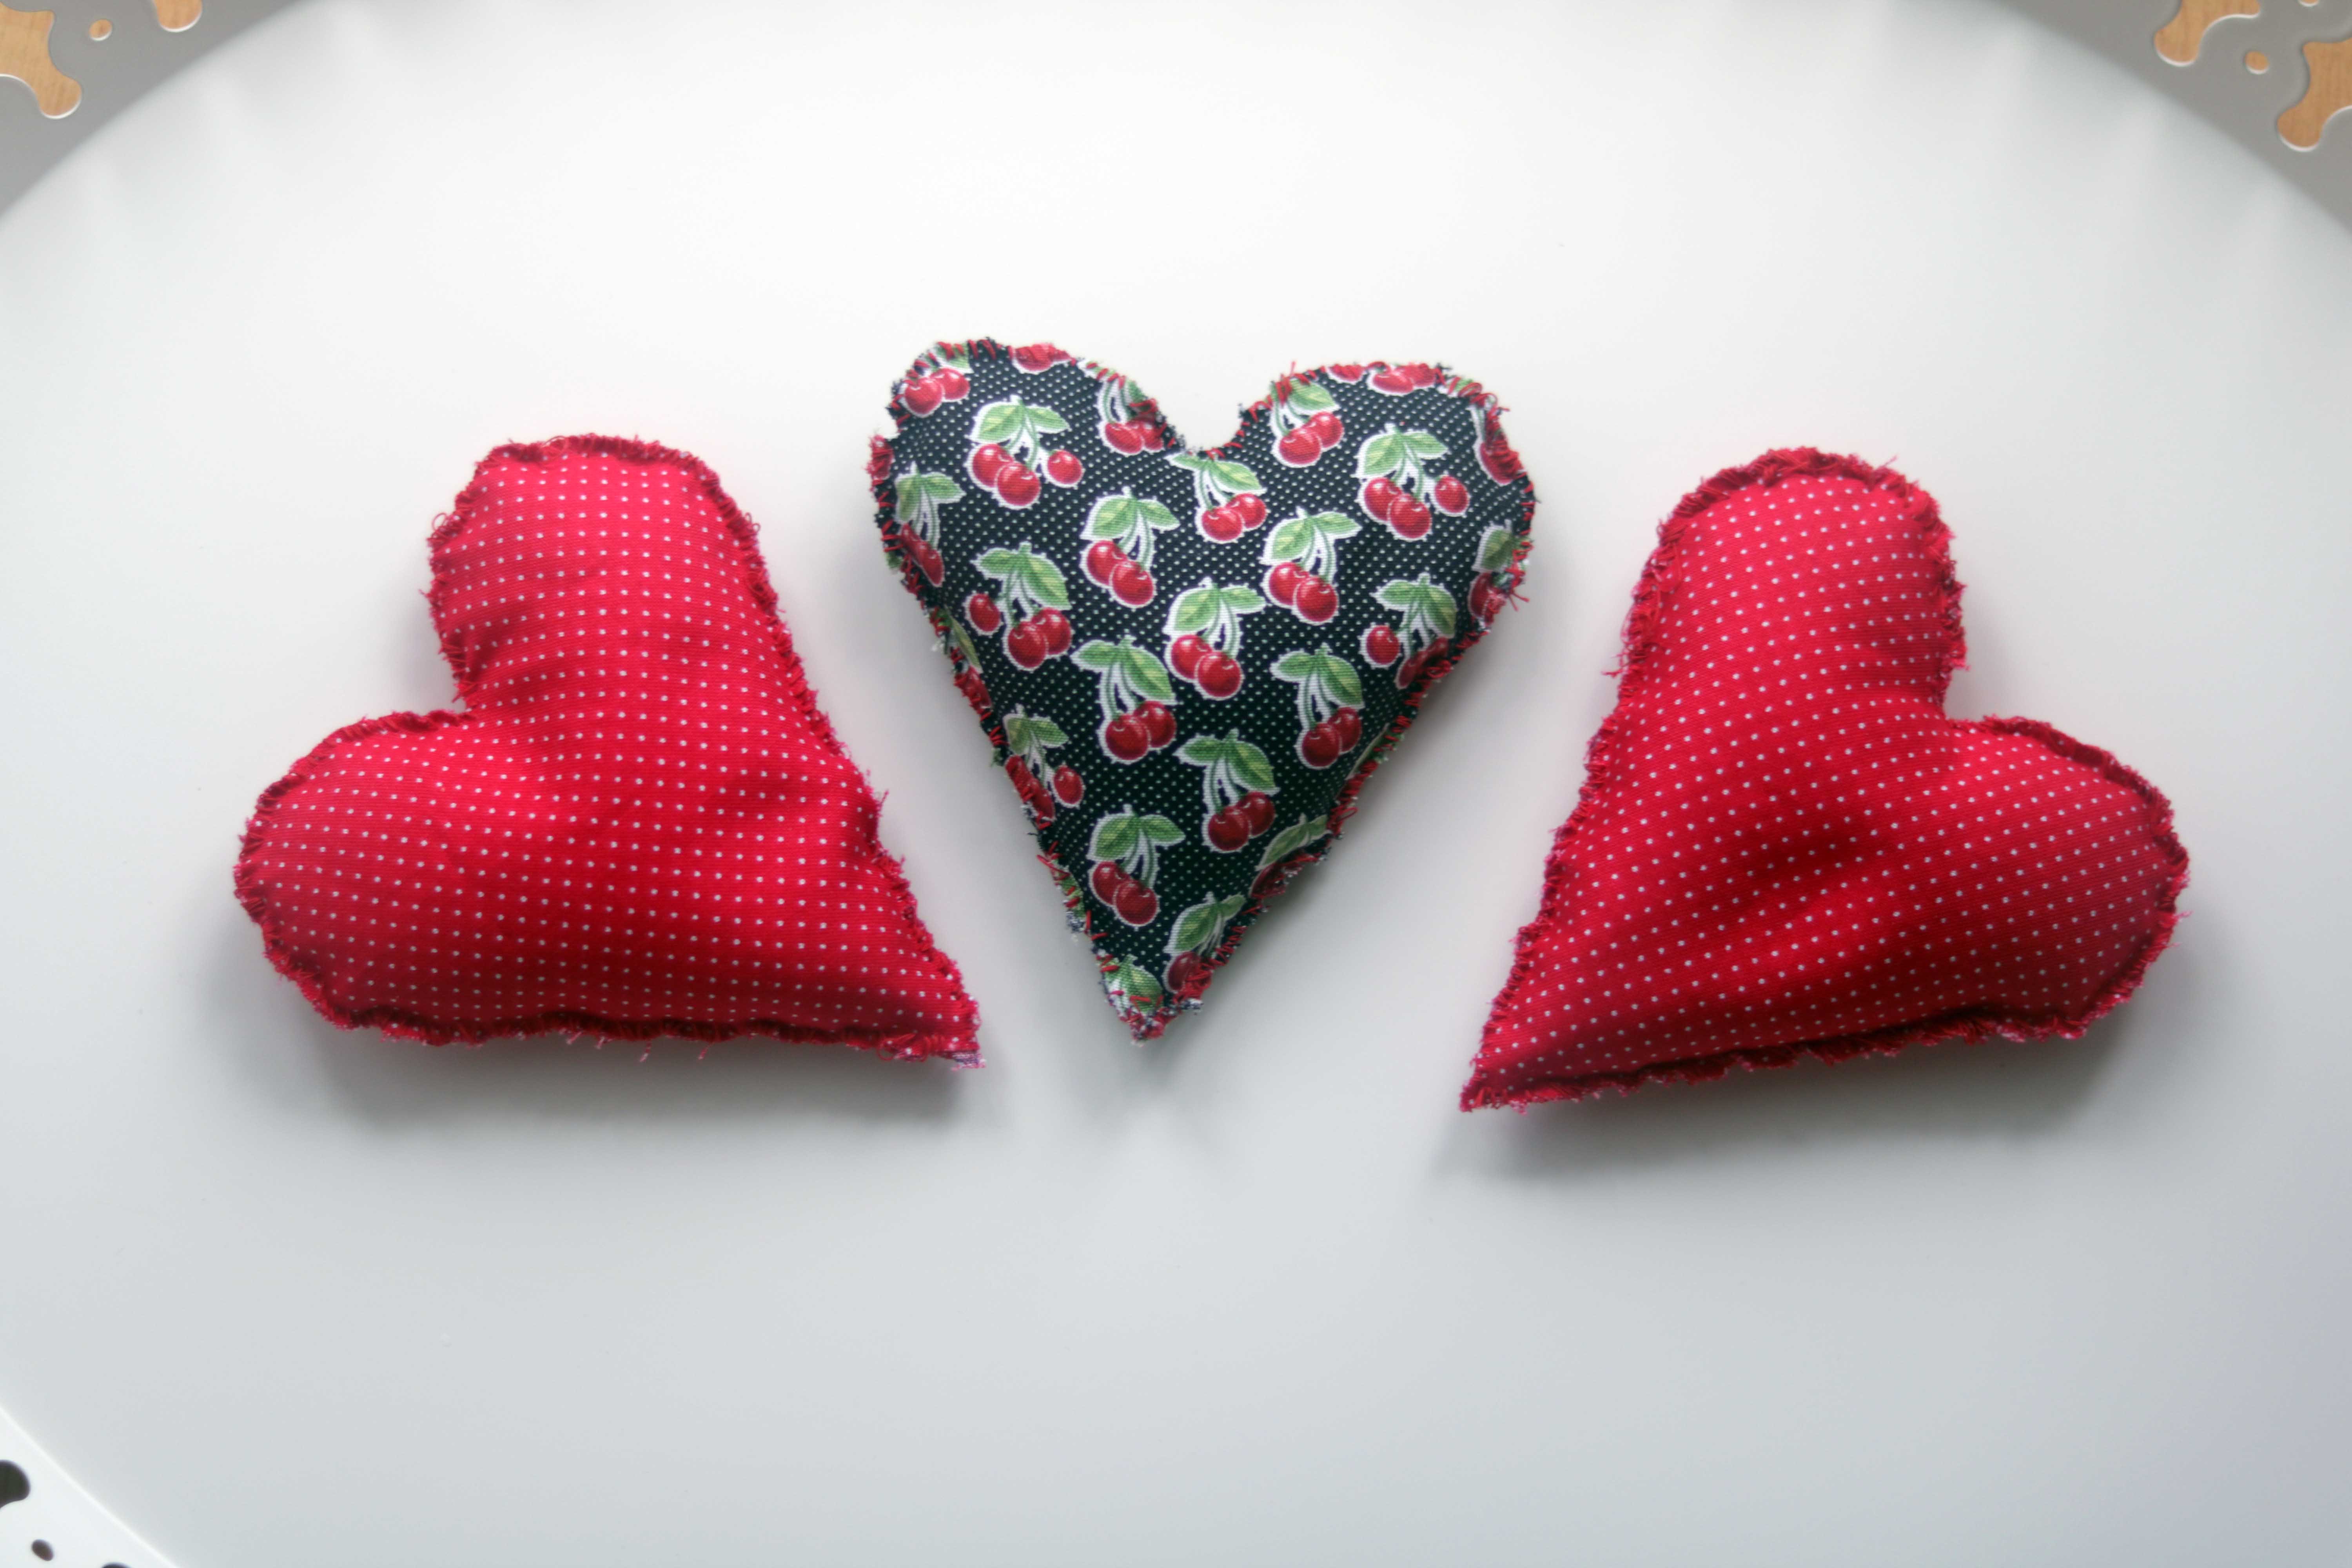 Heart shaped mojo bags and spell sachets.